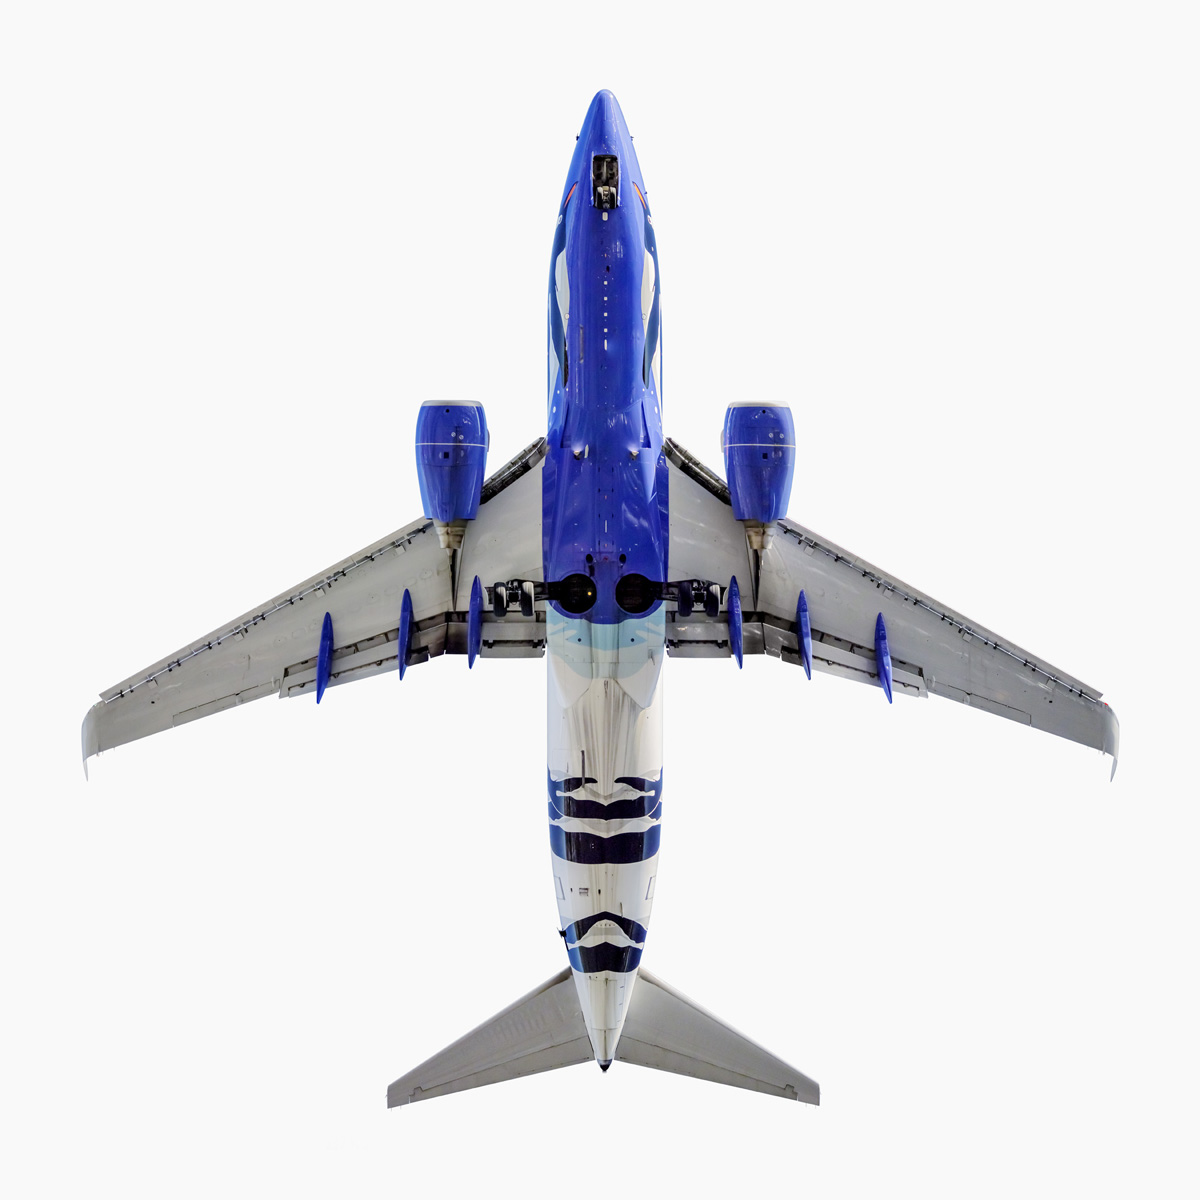 Southwest Airlines Penguin One Boeing 737-700